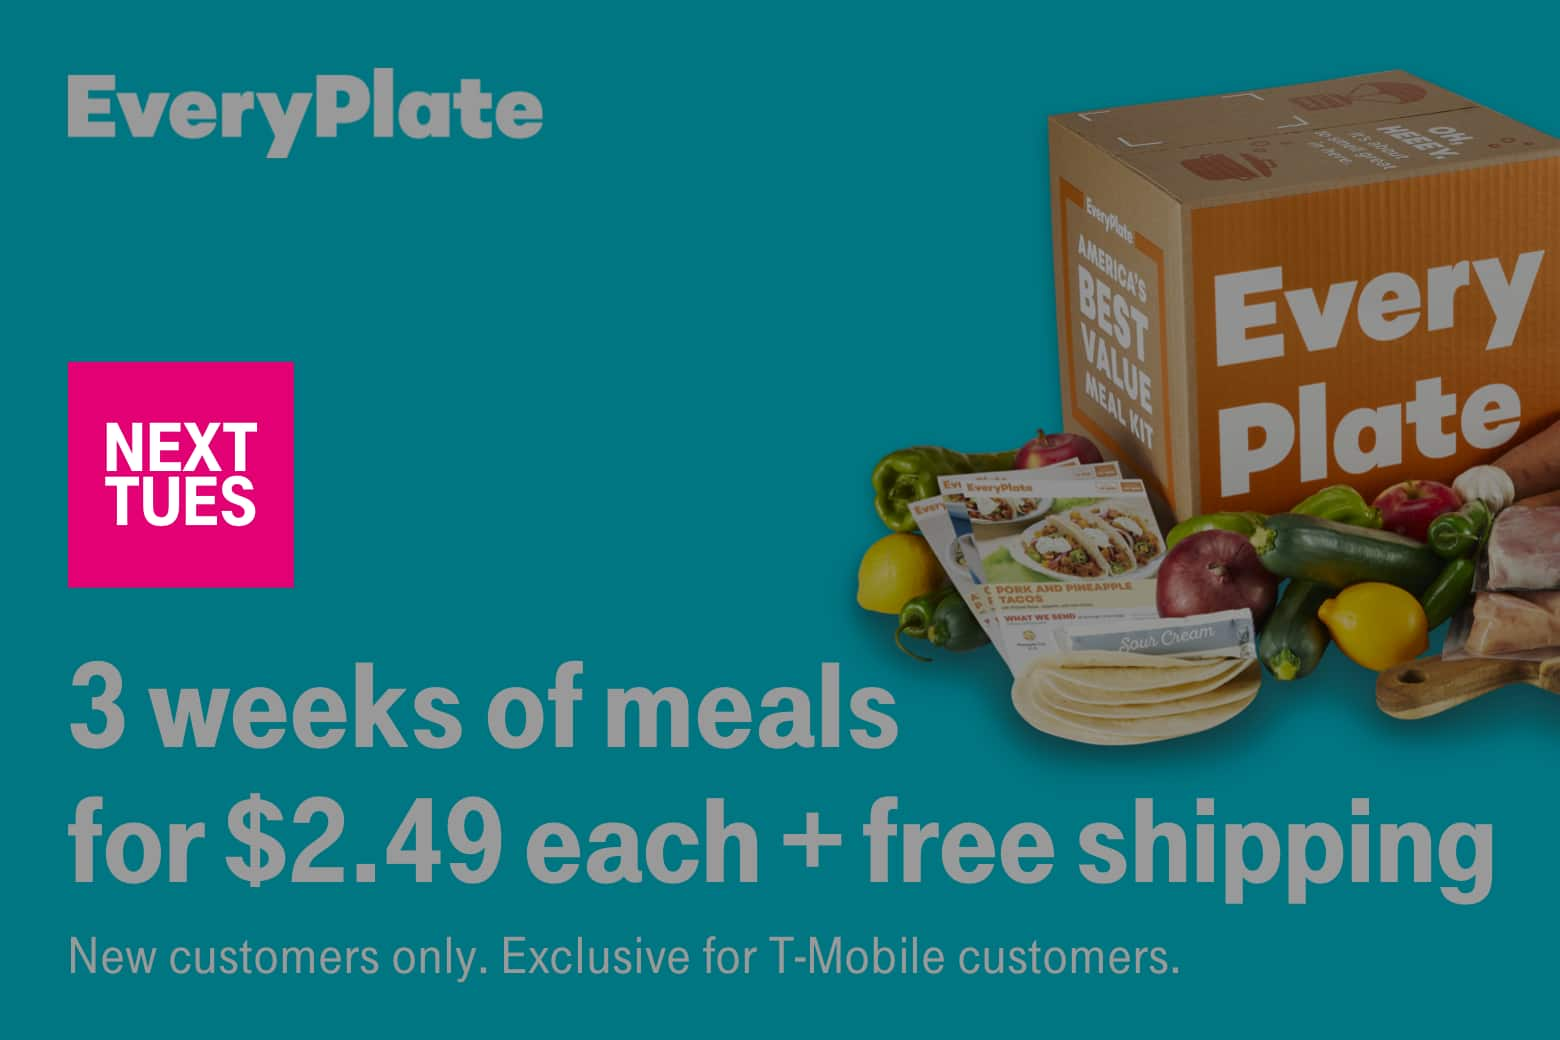 T-Mobile Customers 12/31: Free Whopper, 3 weeks of meals $2.49 each